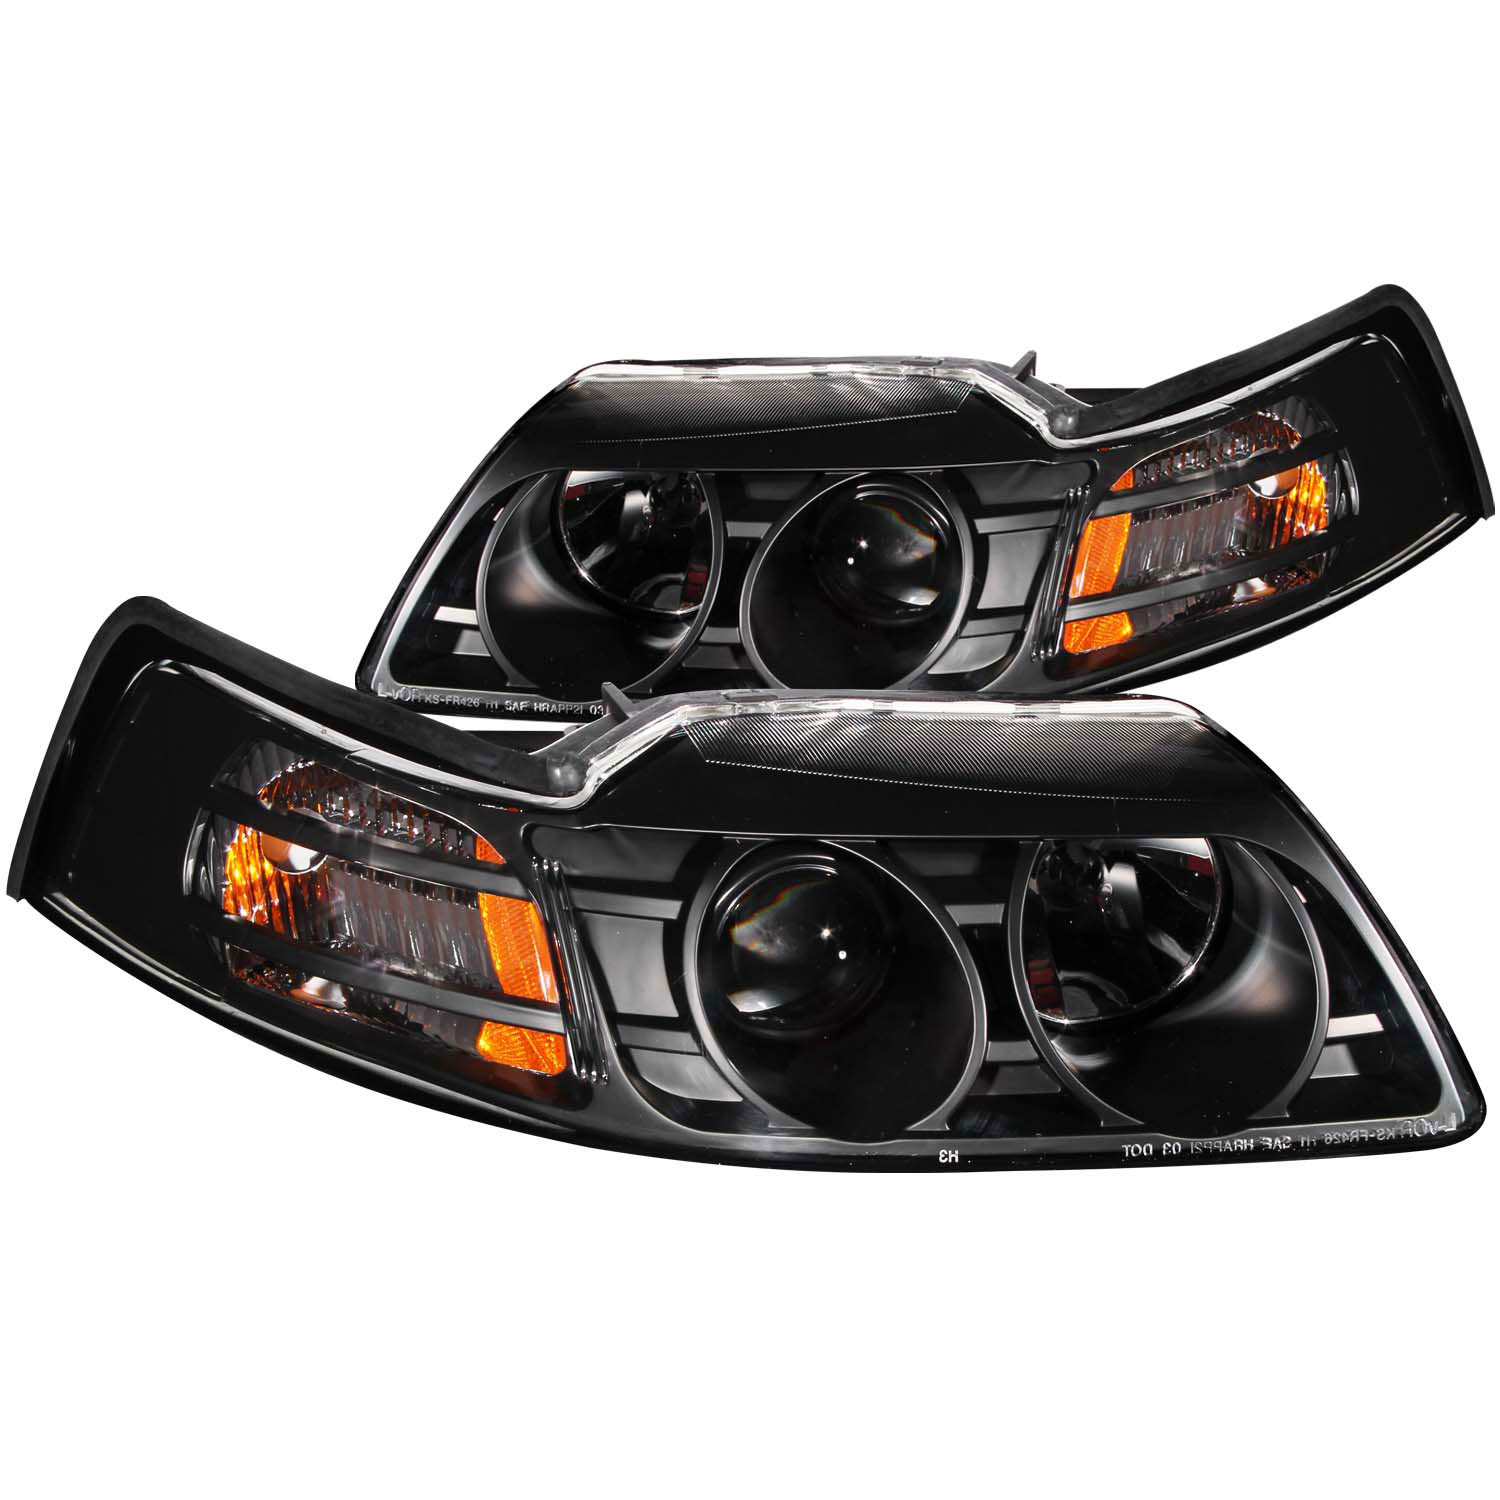 anzo projector headlights ford mustang projector headlights anzo projector headlights ford mustang projector headlights